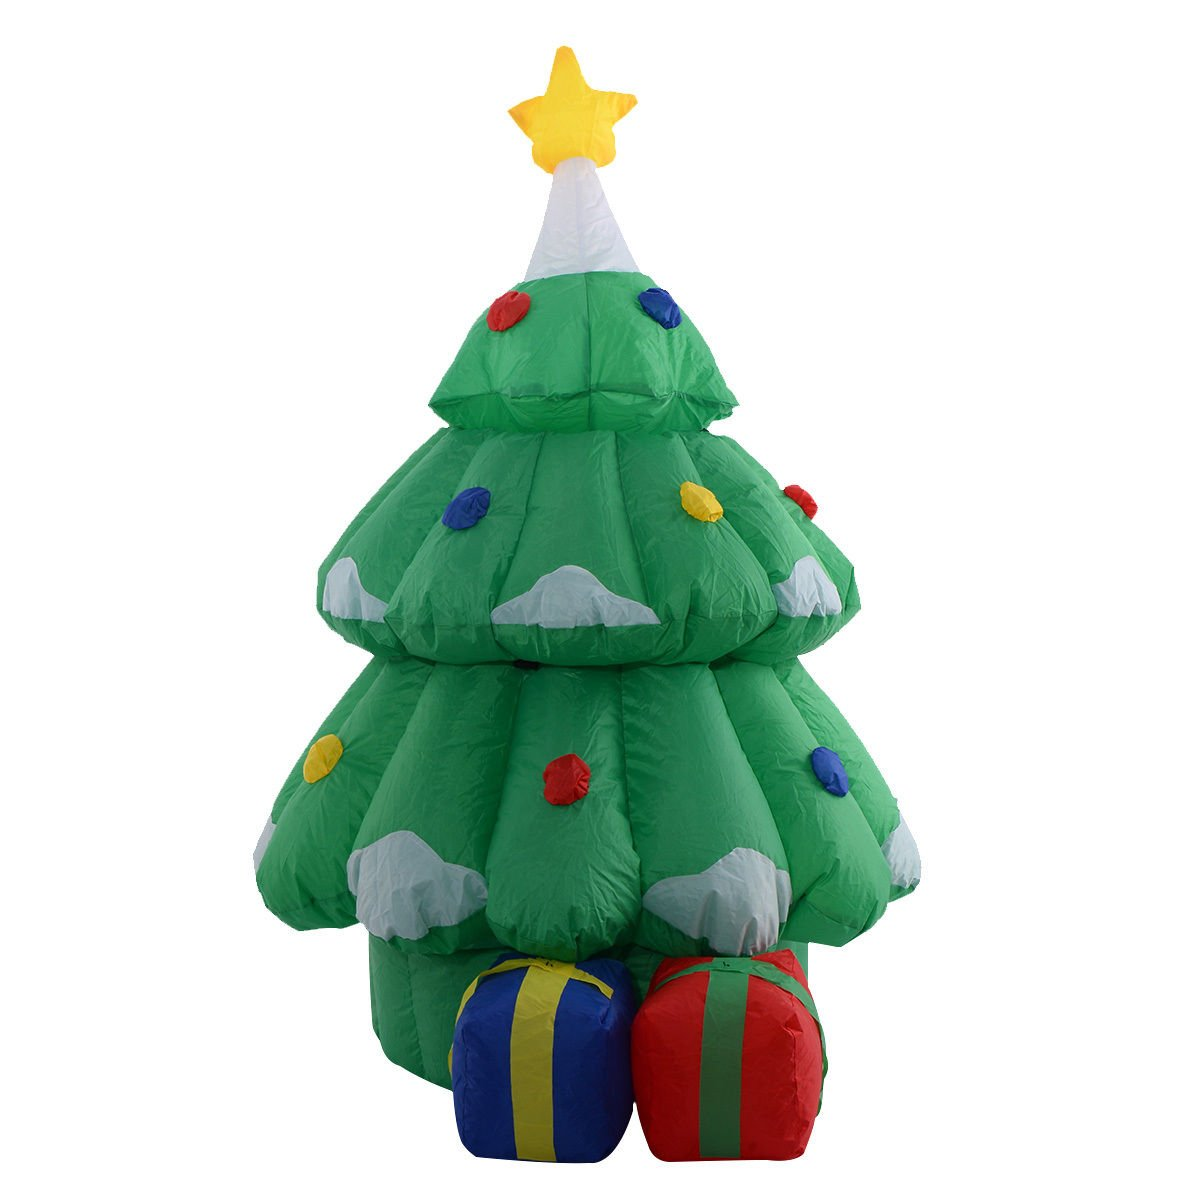 TANGKULA 5 Ft Airblown Inflatable Santa Claus in Christmas Tree Decor Lawn Yard Outdoor